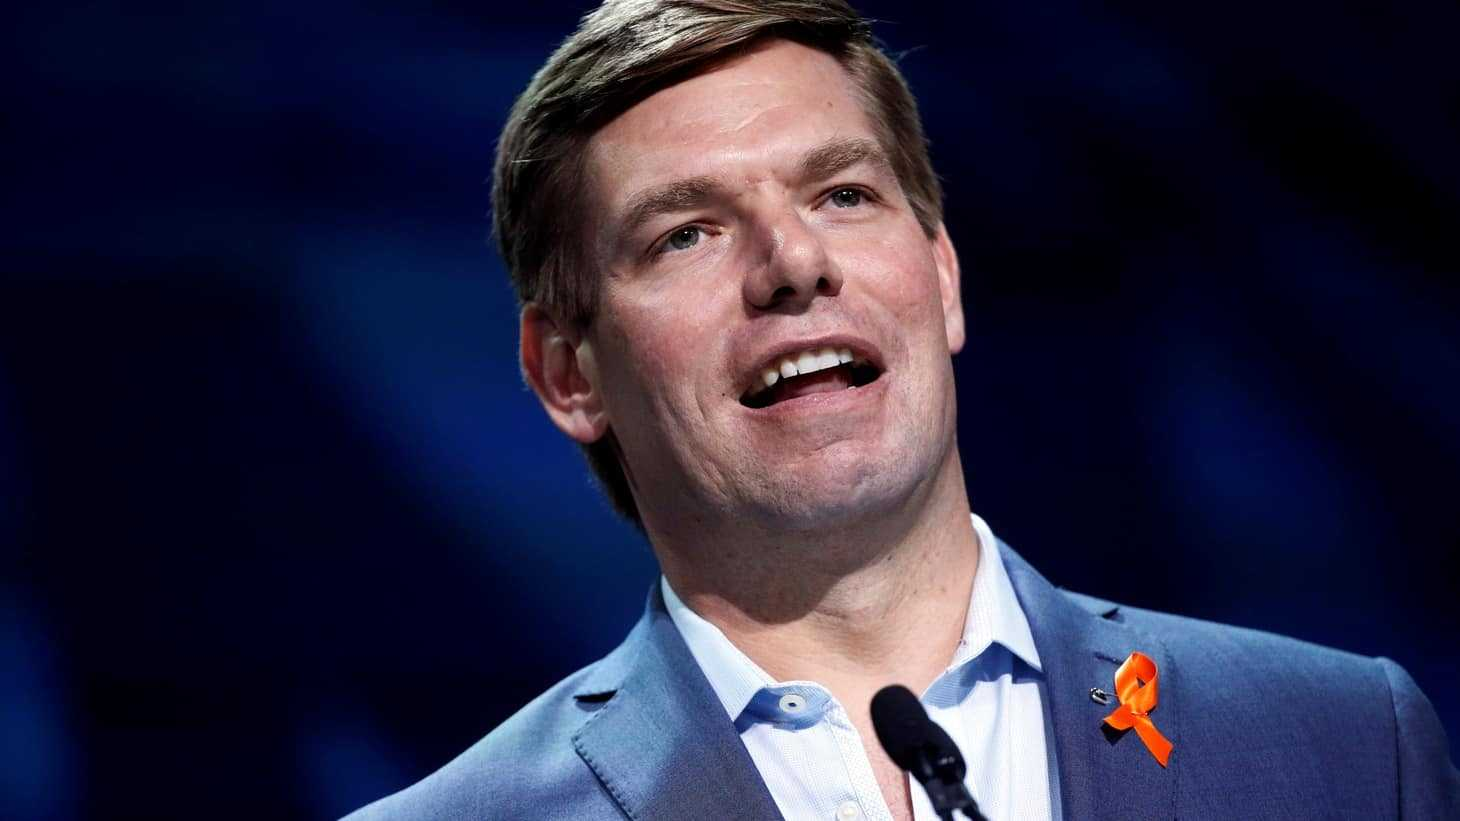 FARTGATE: Rep. Eric Swalwell Appears to Pass Gas On Live TV 1